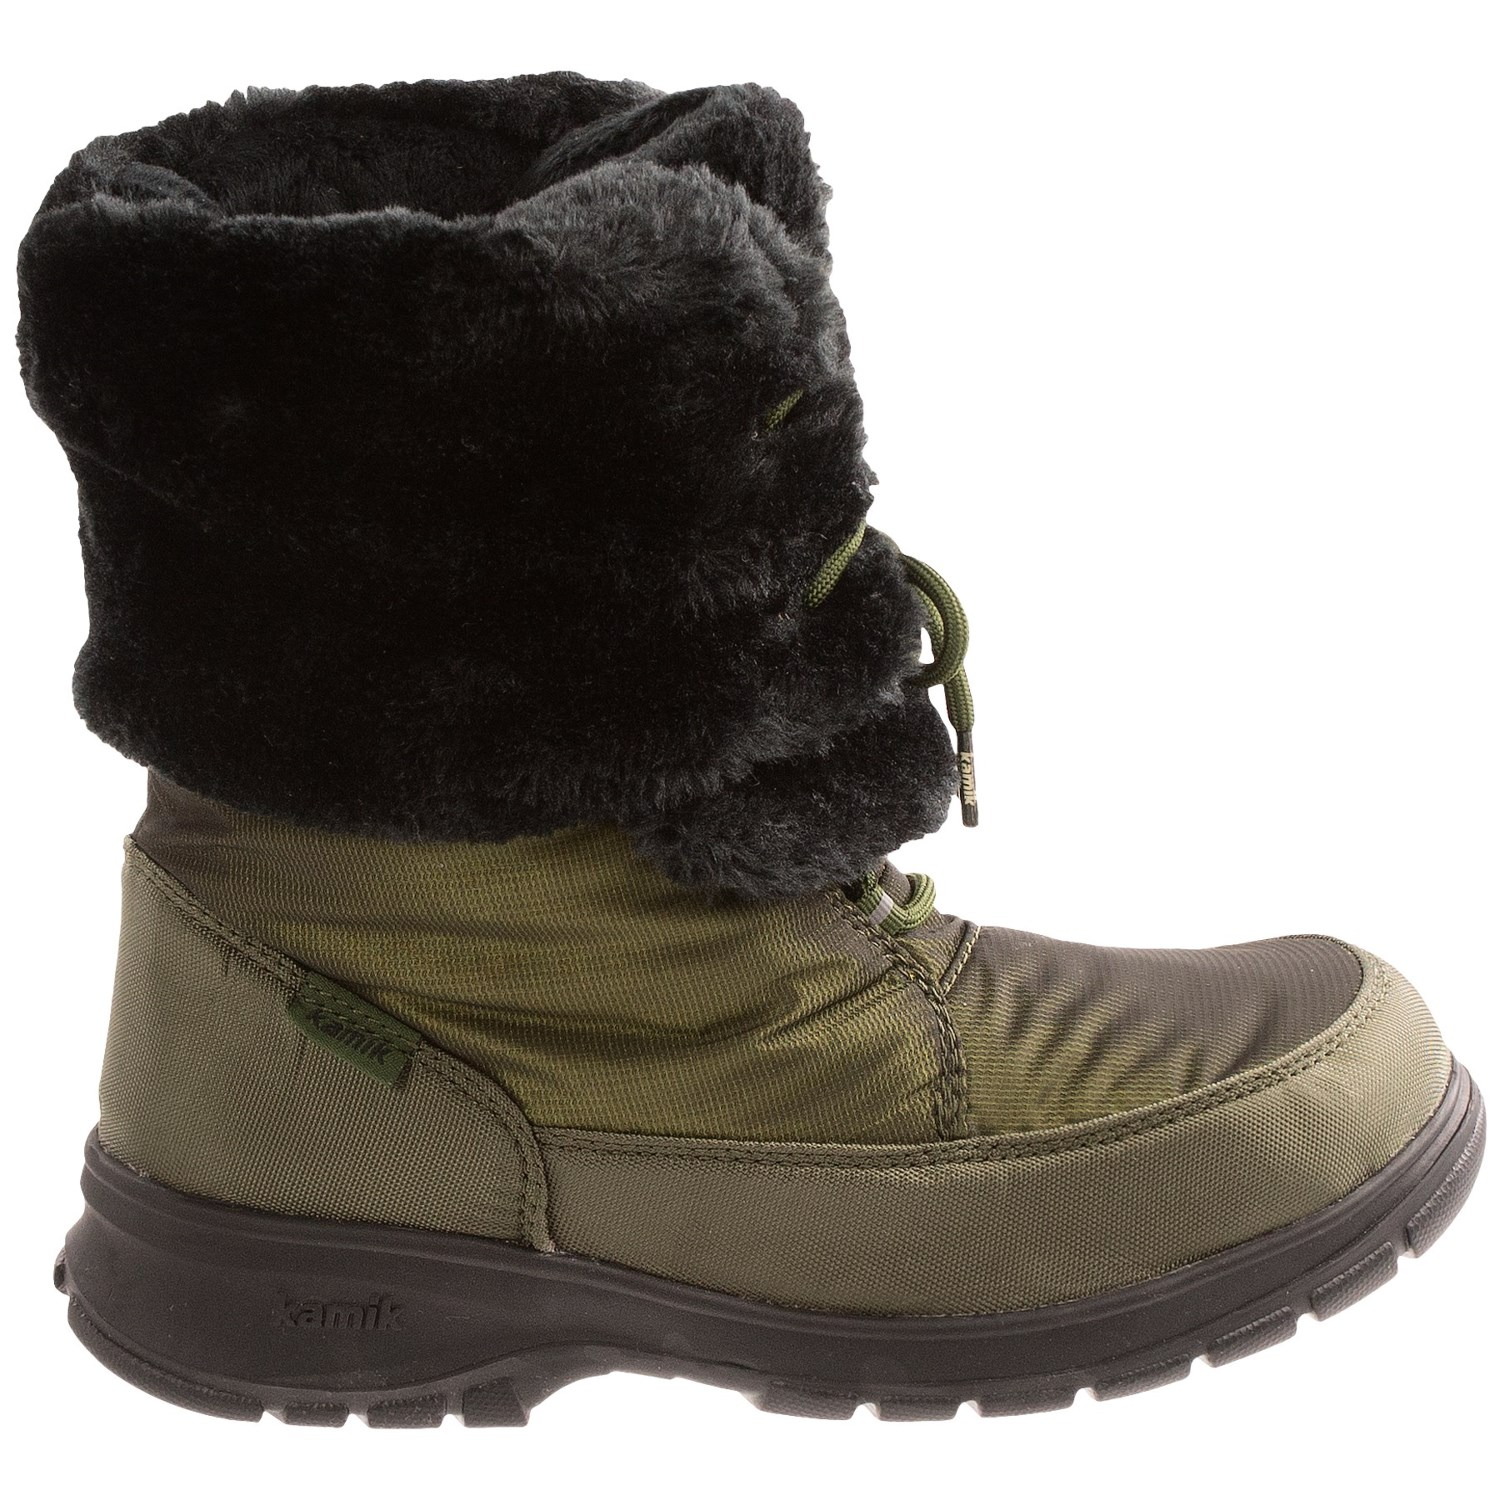 Cheap Womens Snow Boots Waterproof | Santa Barbara Institute for ...